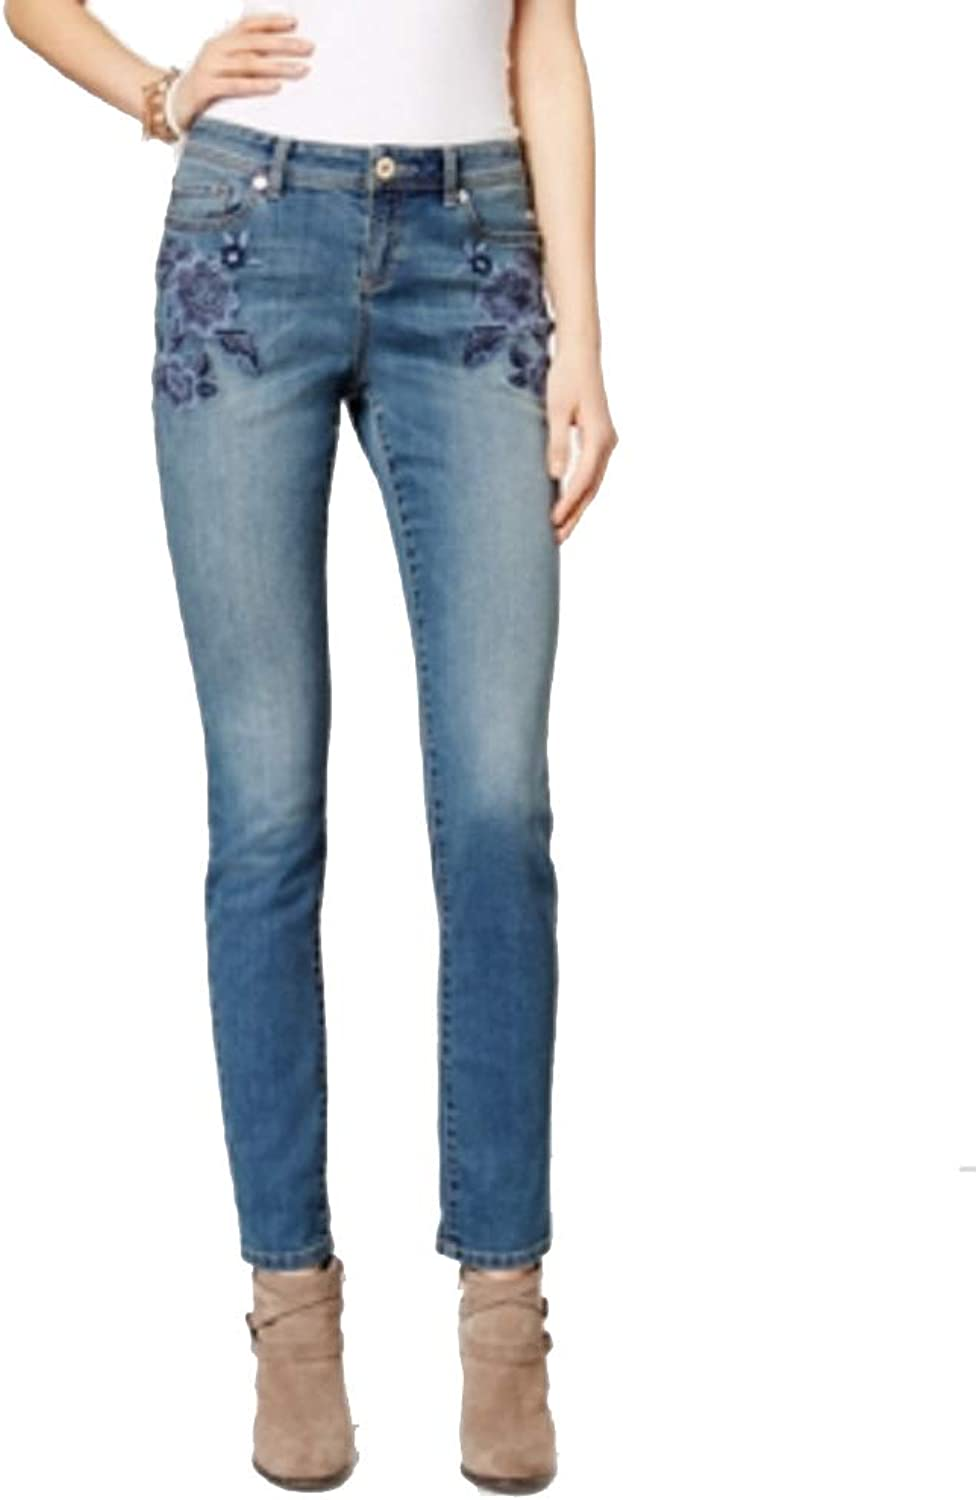 I.N.C. International Concepts Women's Embroidered Sail Wash Skinny Jeans